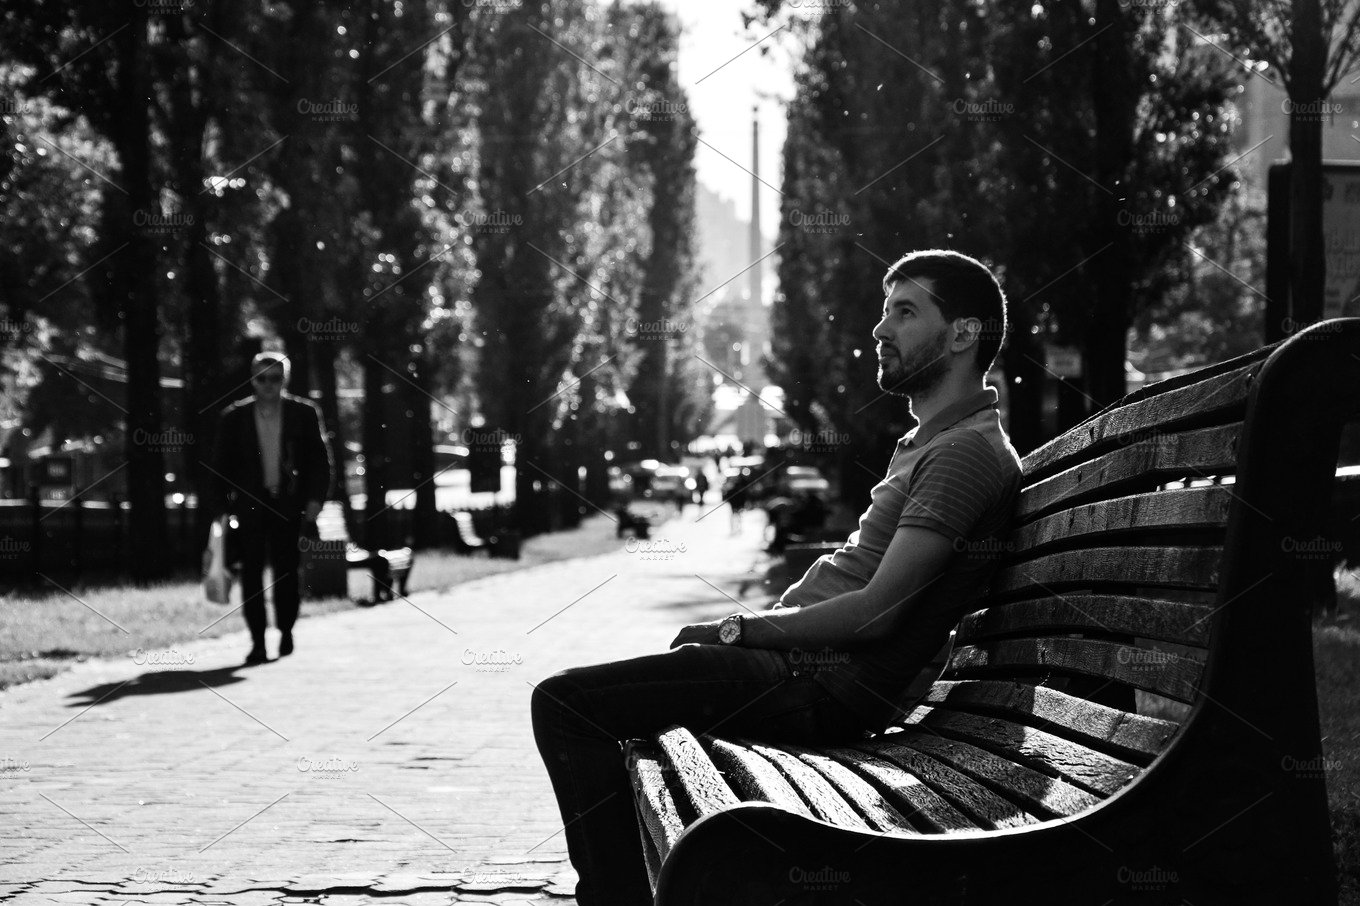 Young Sad Man Sitting On The Bench High Quality People Images Creative Market